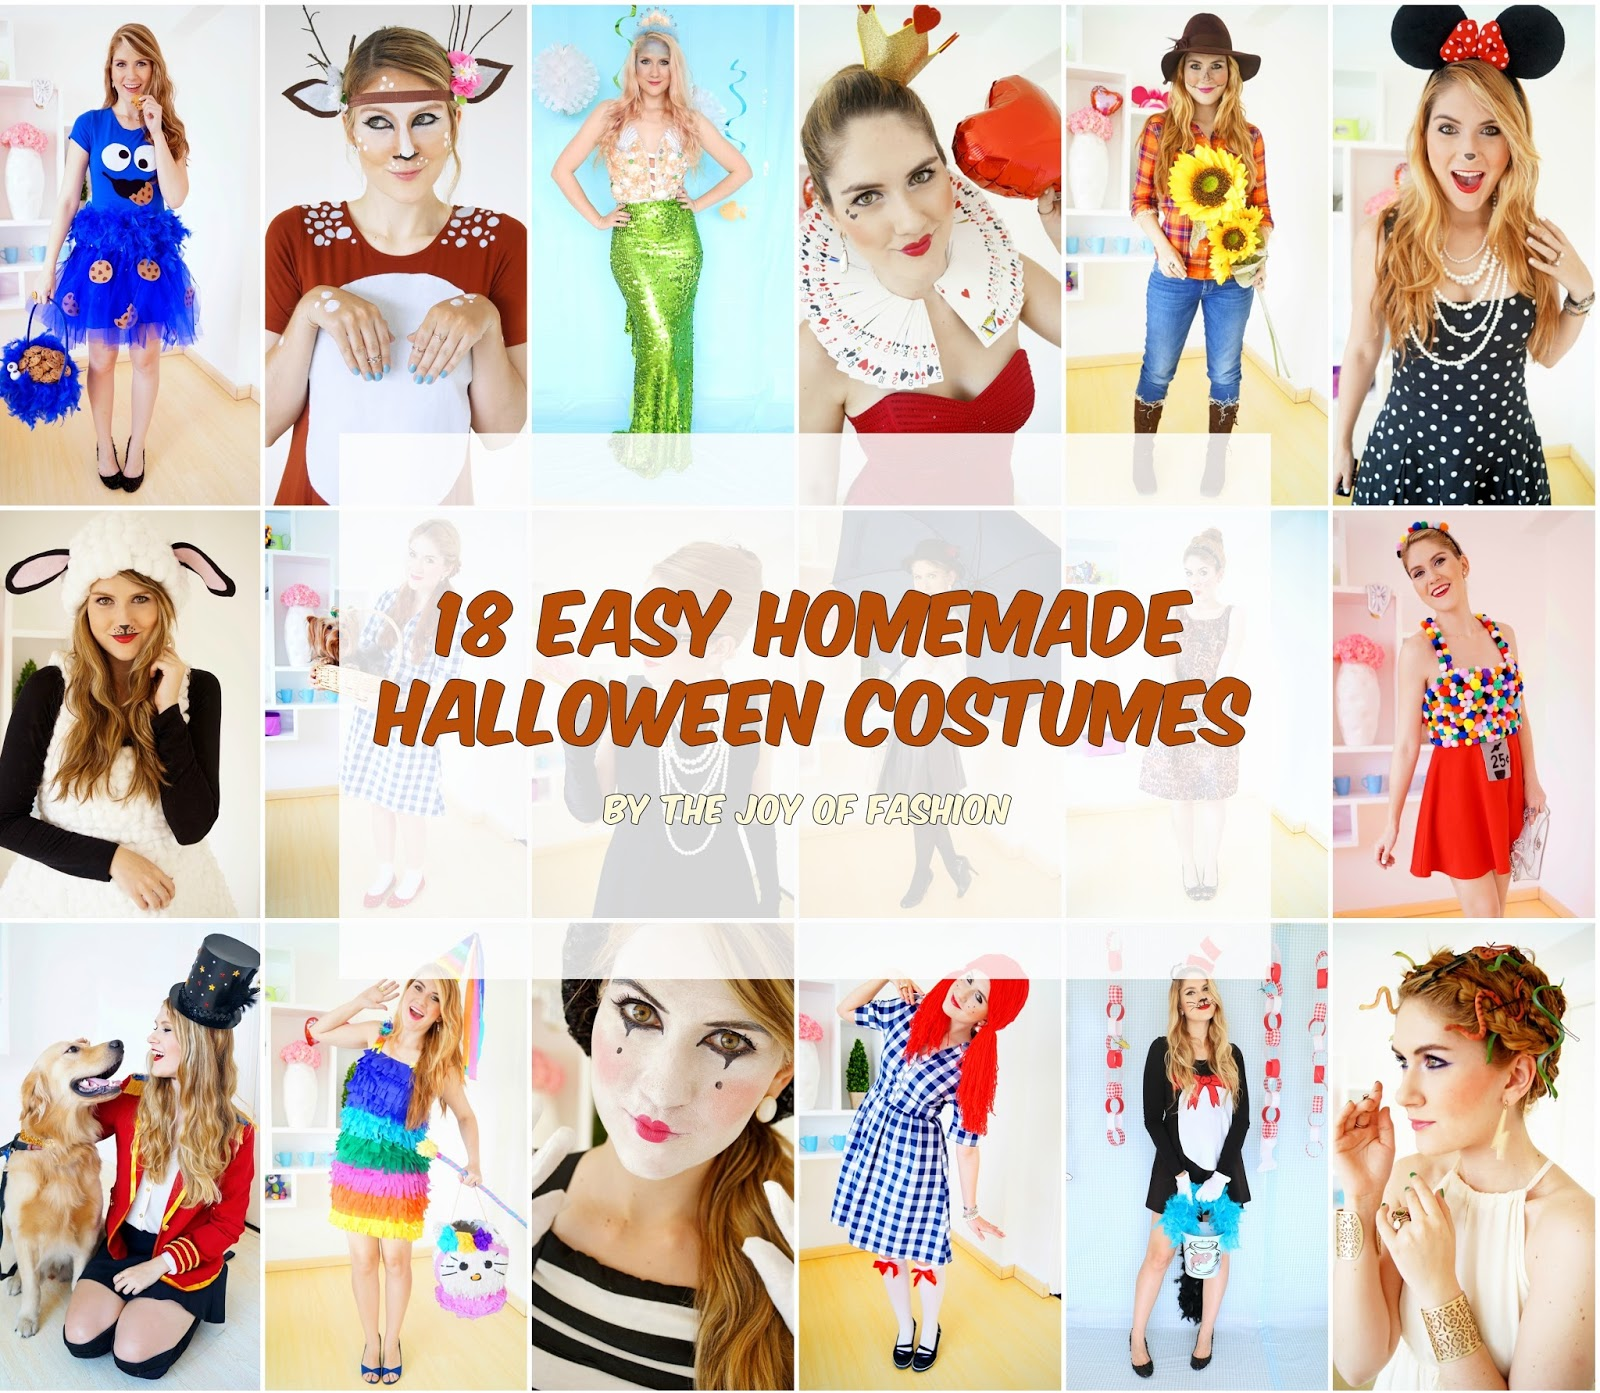 Easy Homemade Halloween Costume Ideas